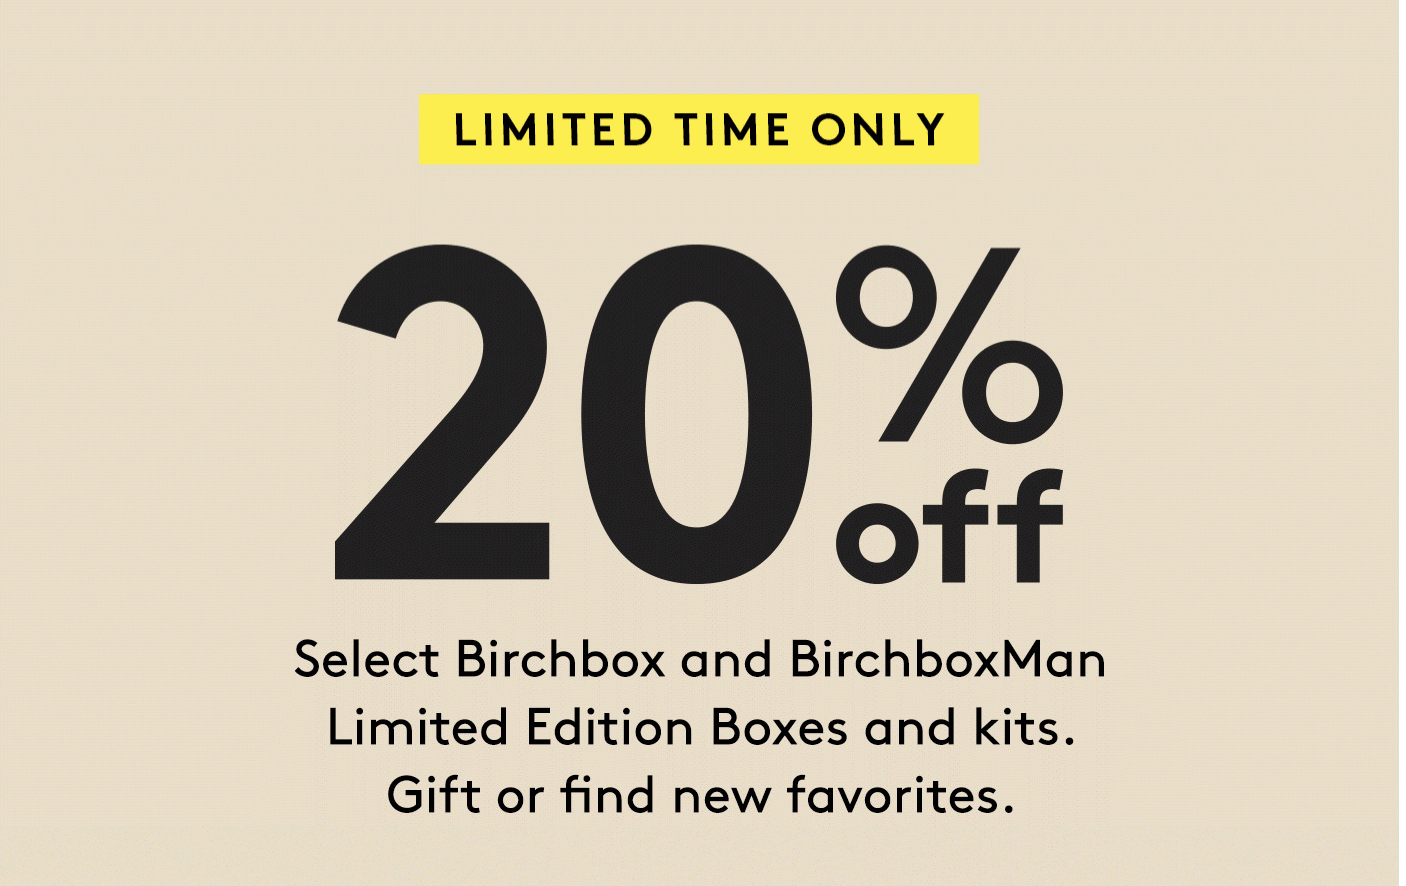 Birchbox & Birchbox Man 20% Off Sale on Select Limited Edition Boxes & Kits!